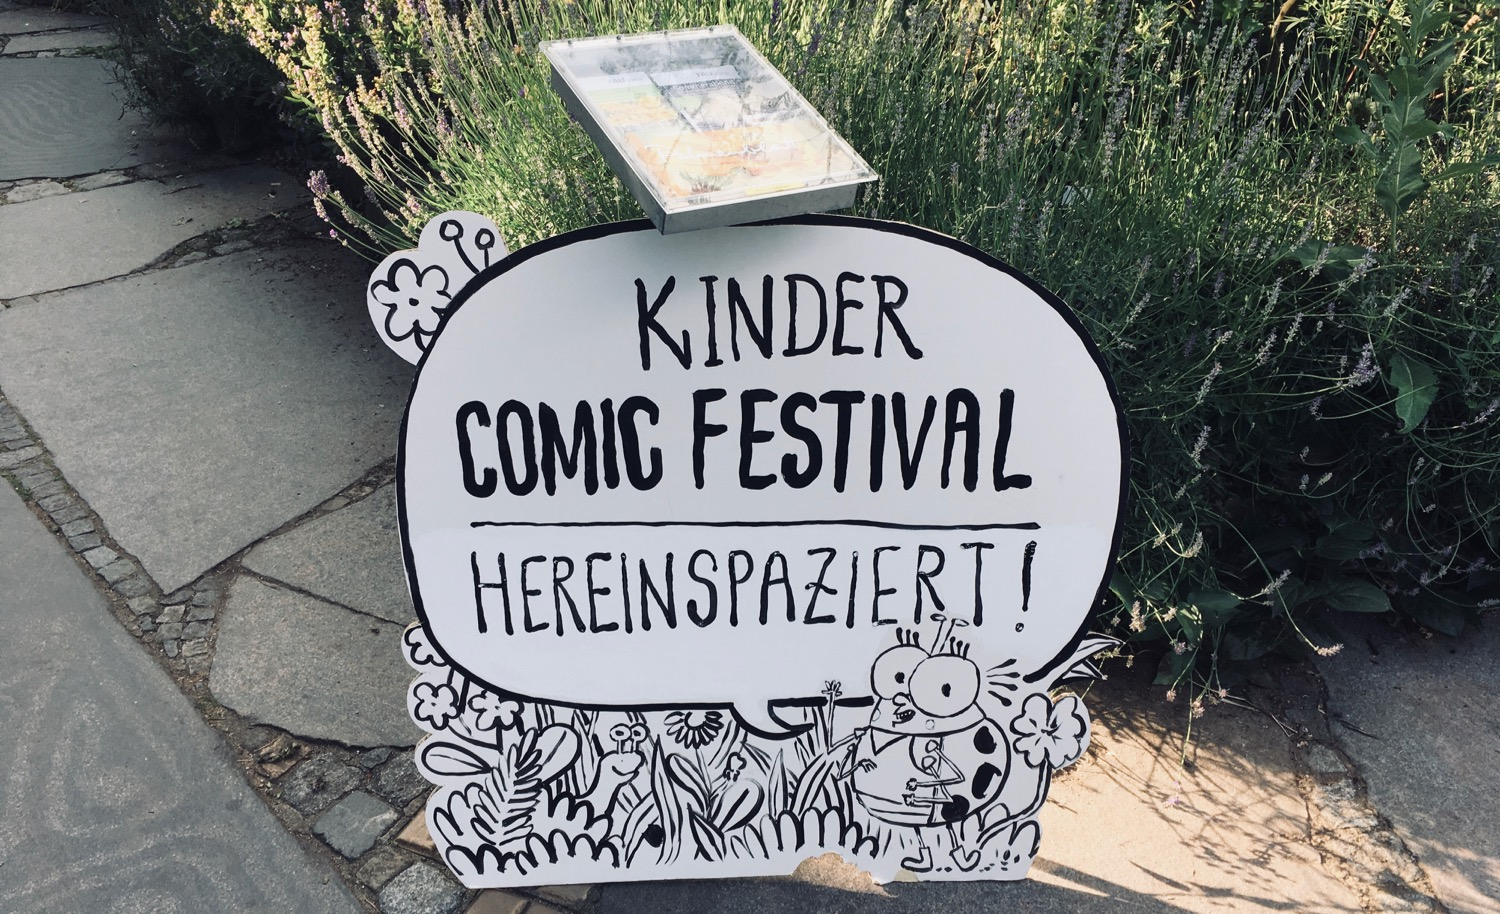 Comic Salon Erlangen 2018: Hereinspaziert! (Kinder Comic Festival)